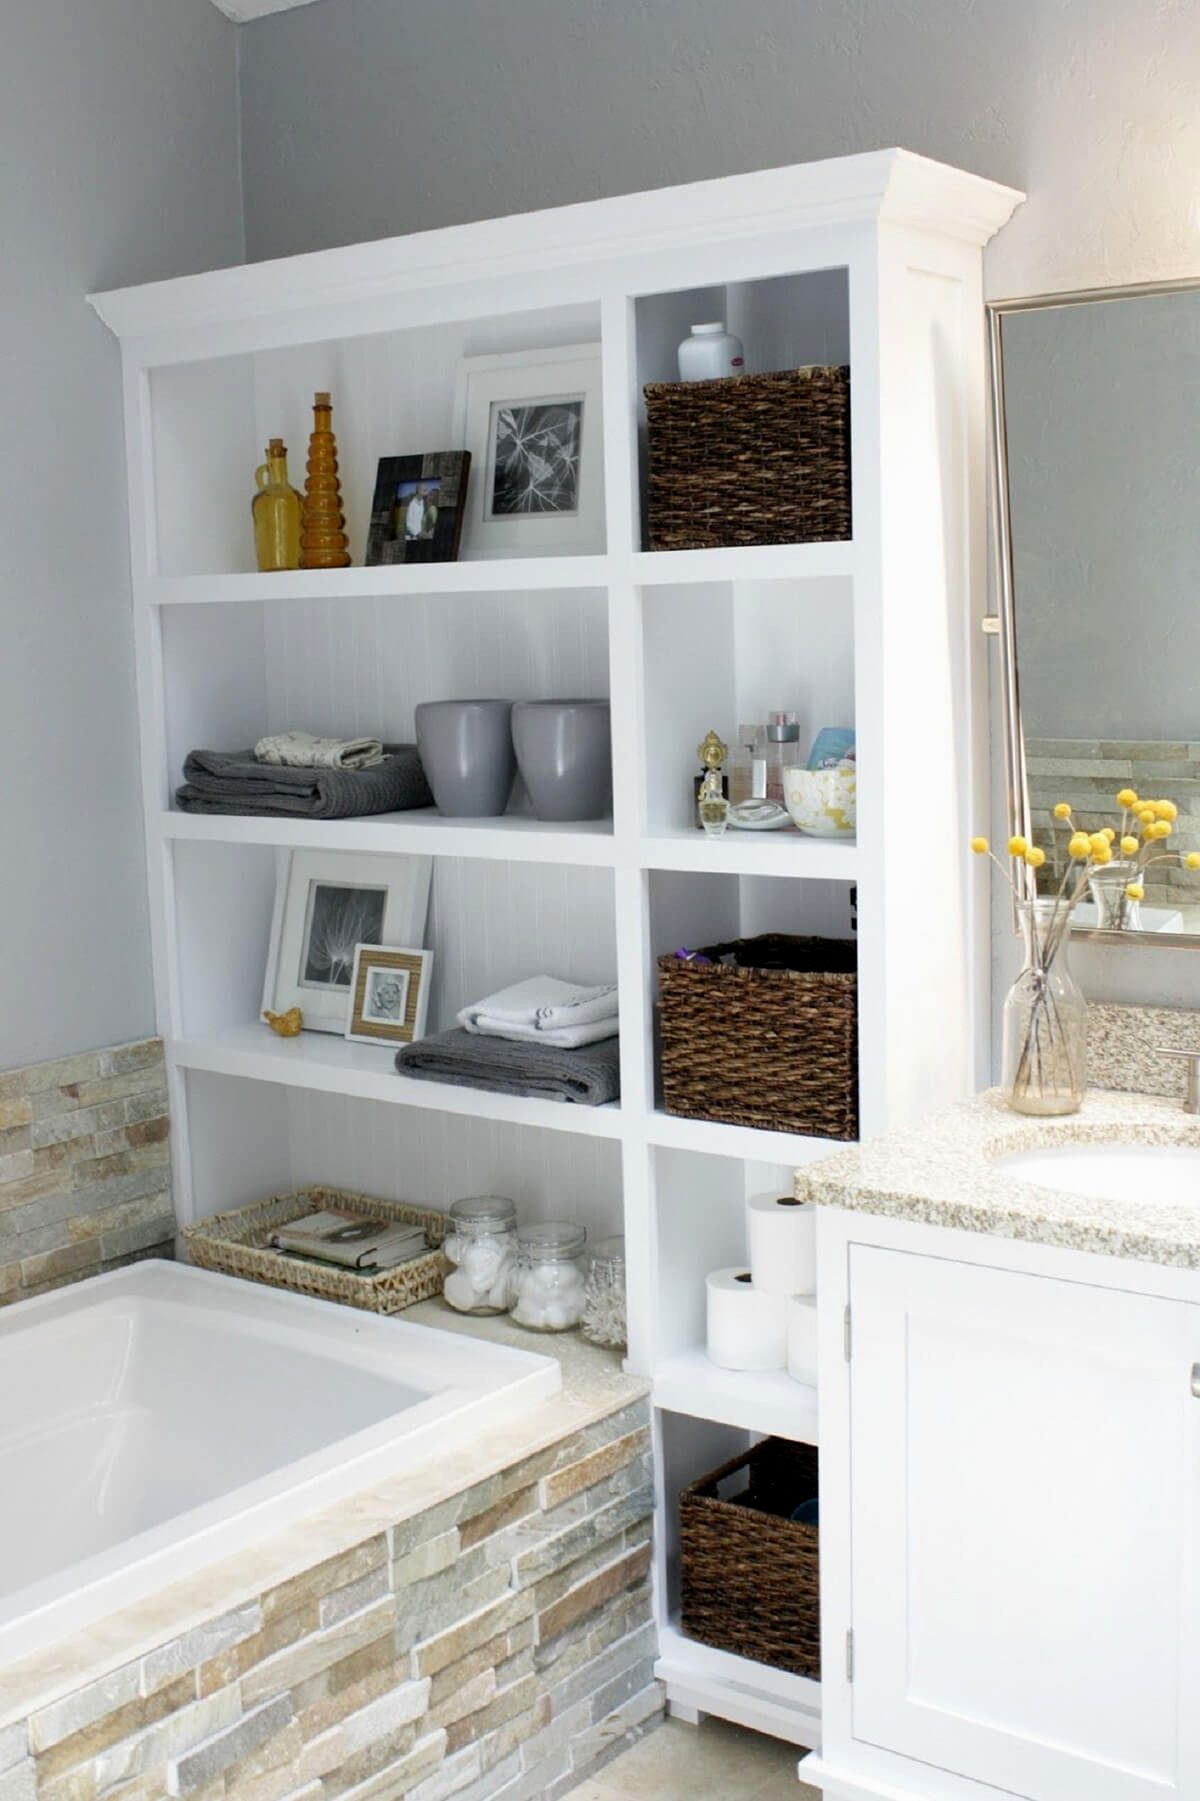 beautiful bathroom sinks lowes concept-Inspirational Bathroom Sinks Lowes Decoration